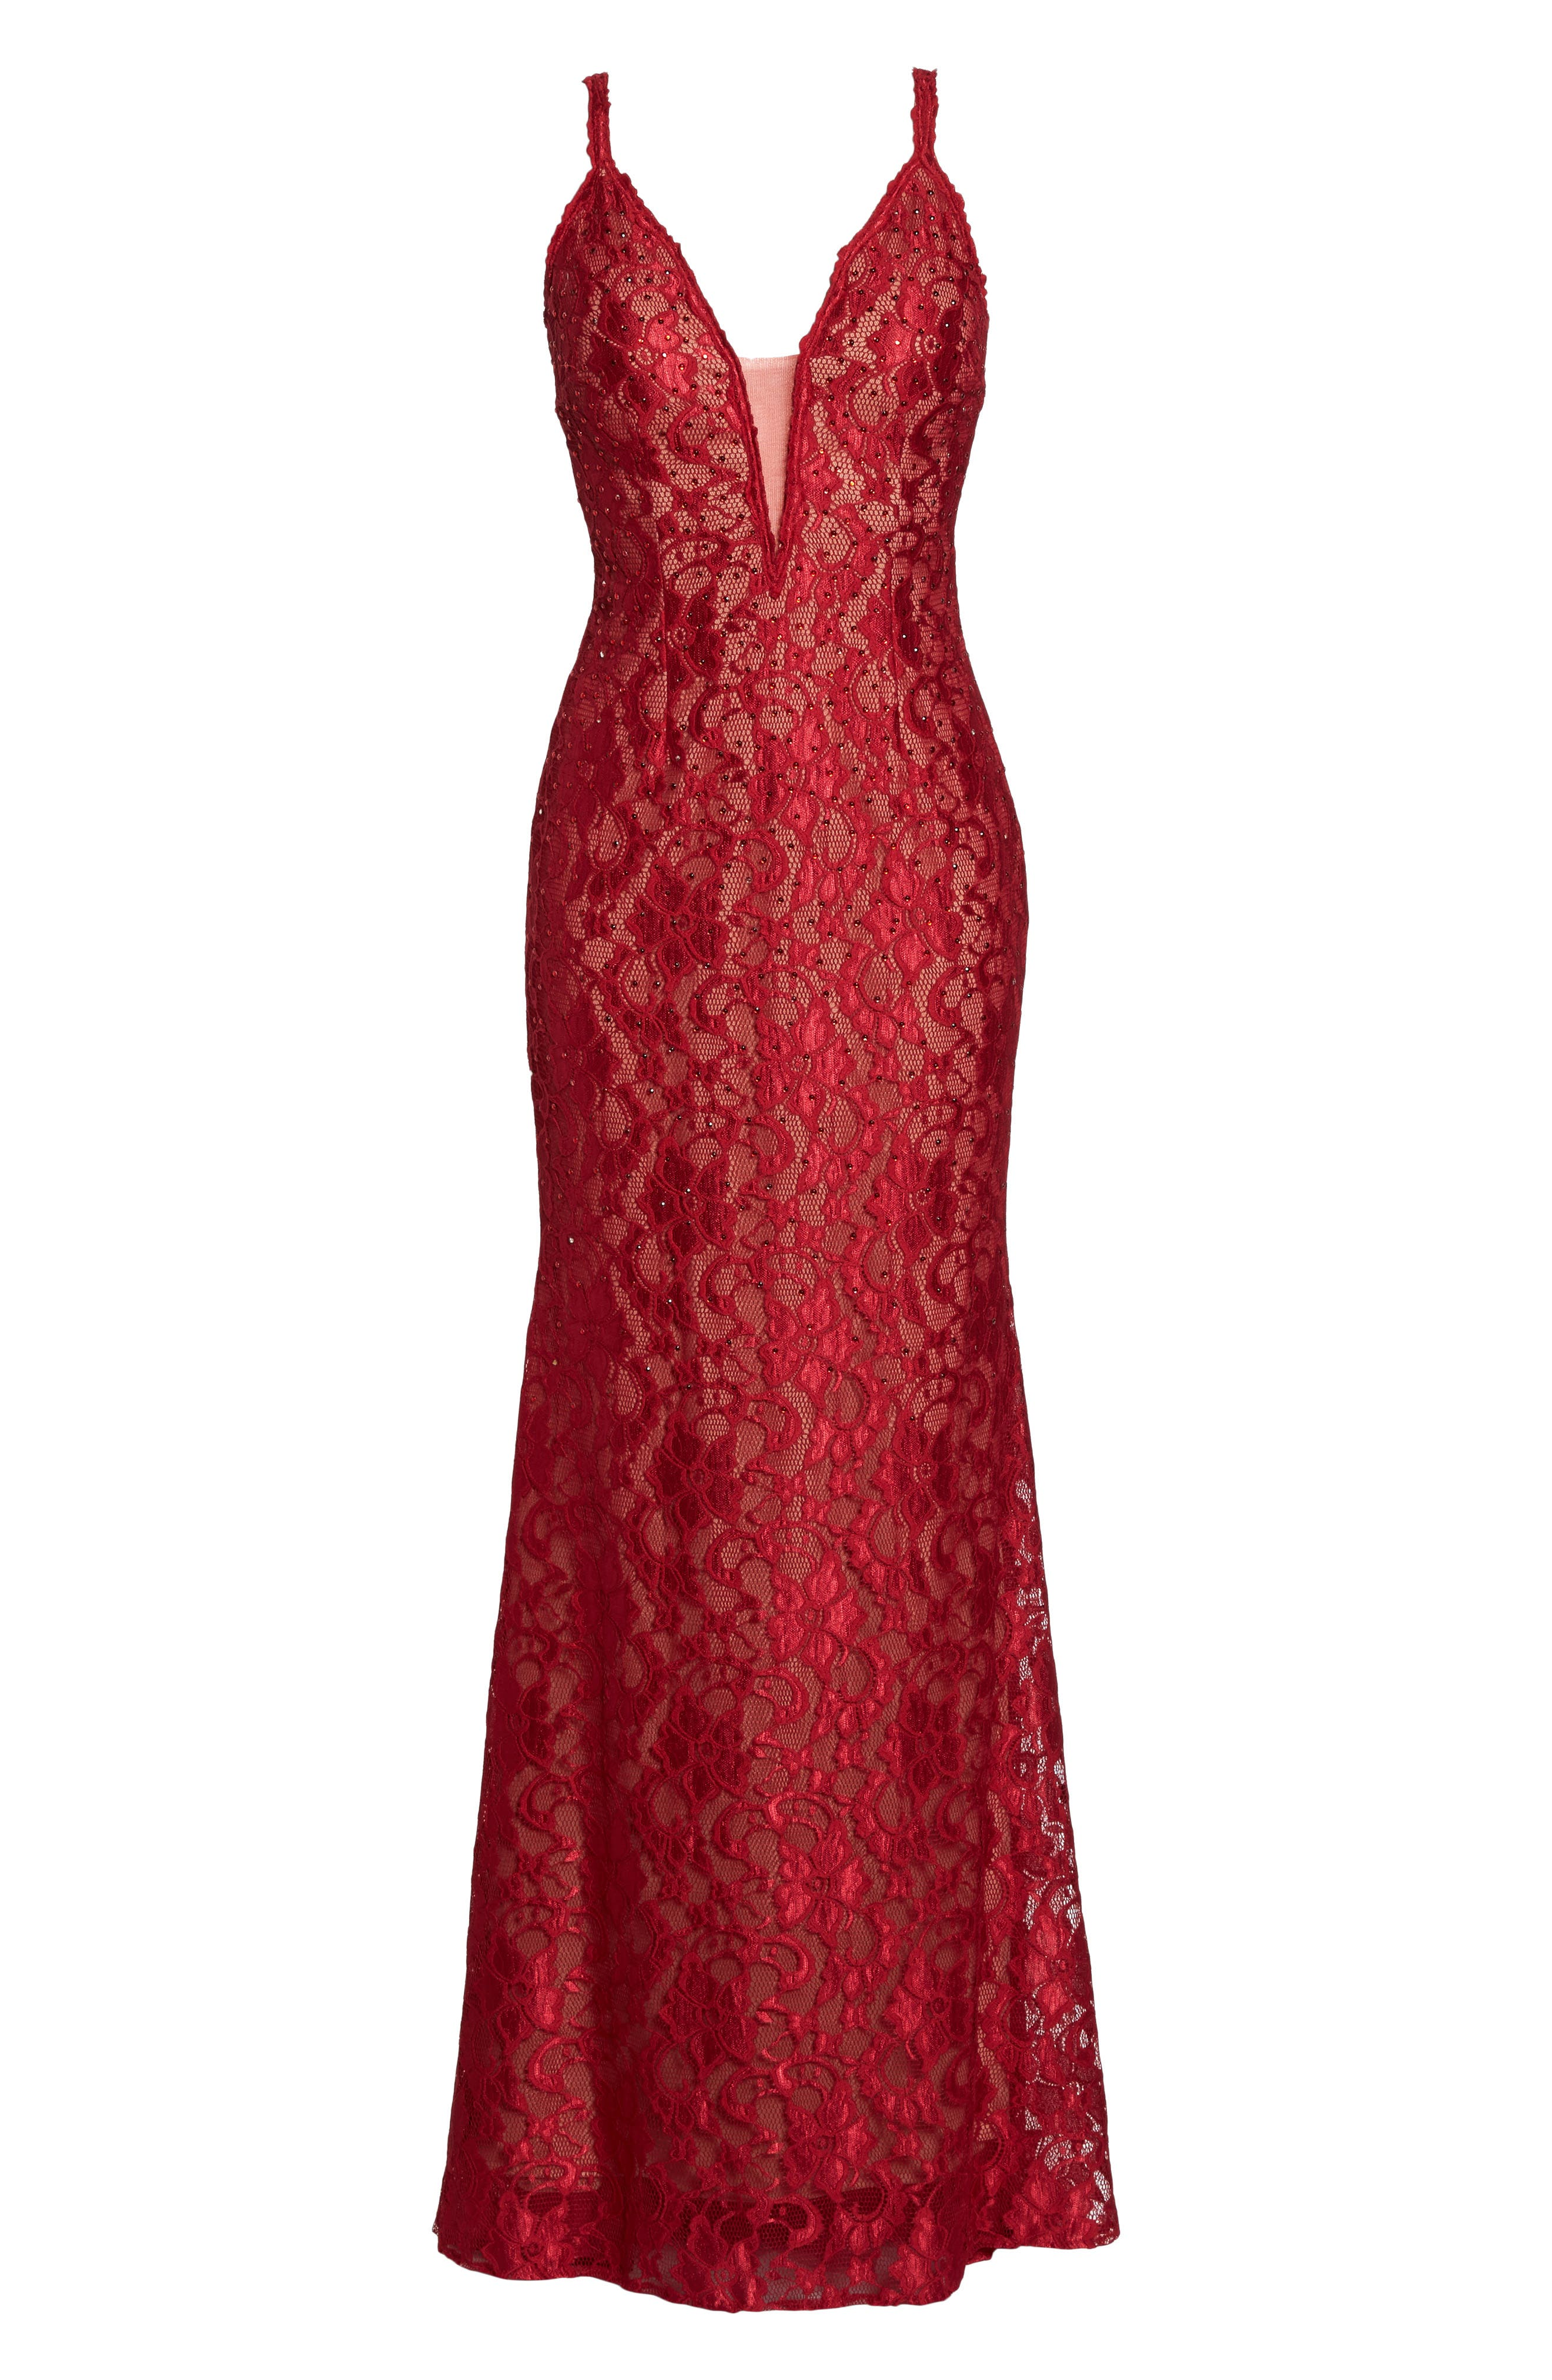 Plunging Beaded Lace Mermaid Gown,                             Alternate thumbnail 6, color,                             Red/ Tan